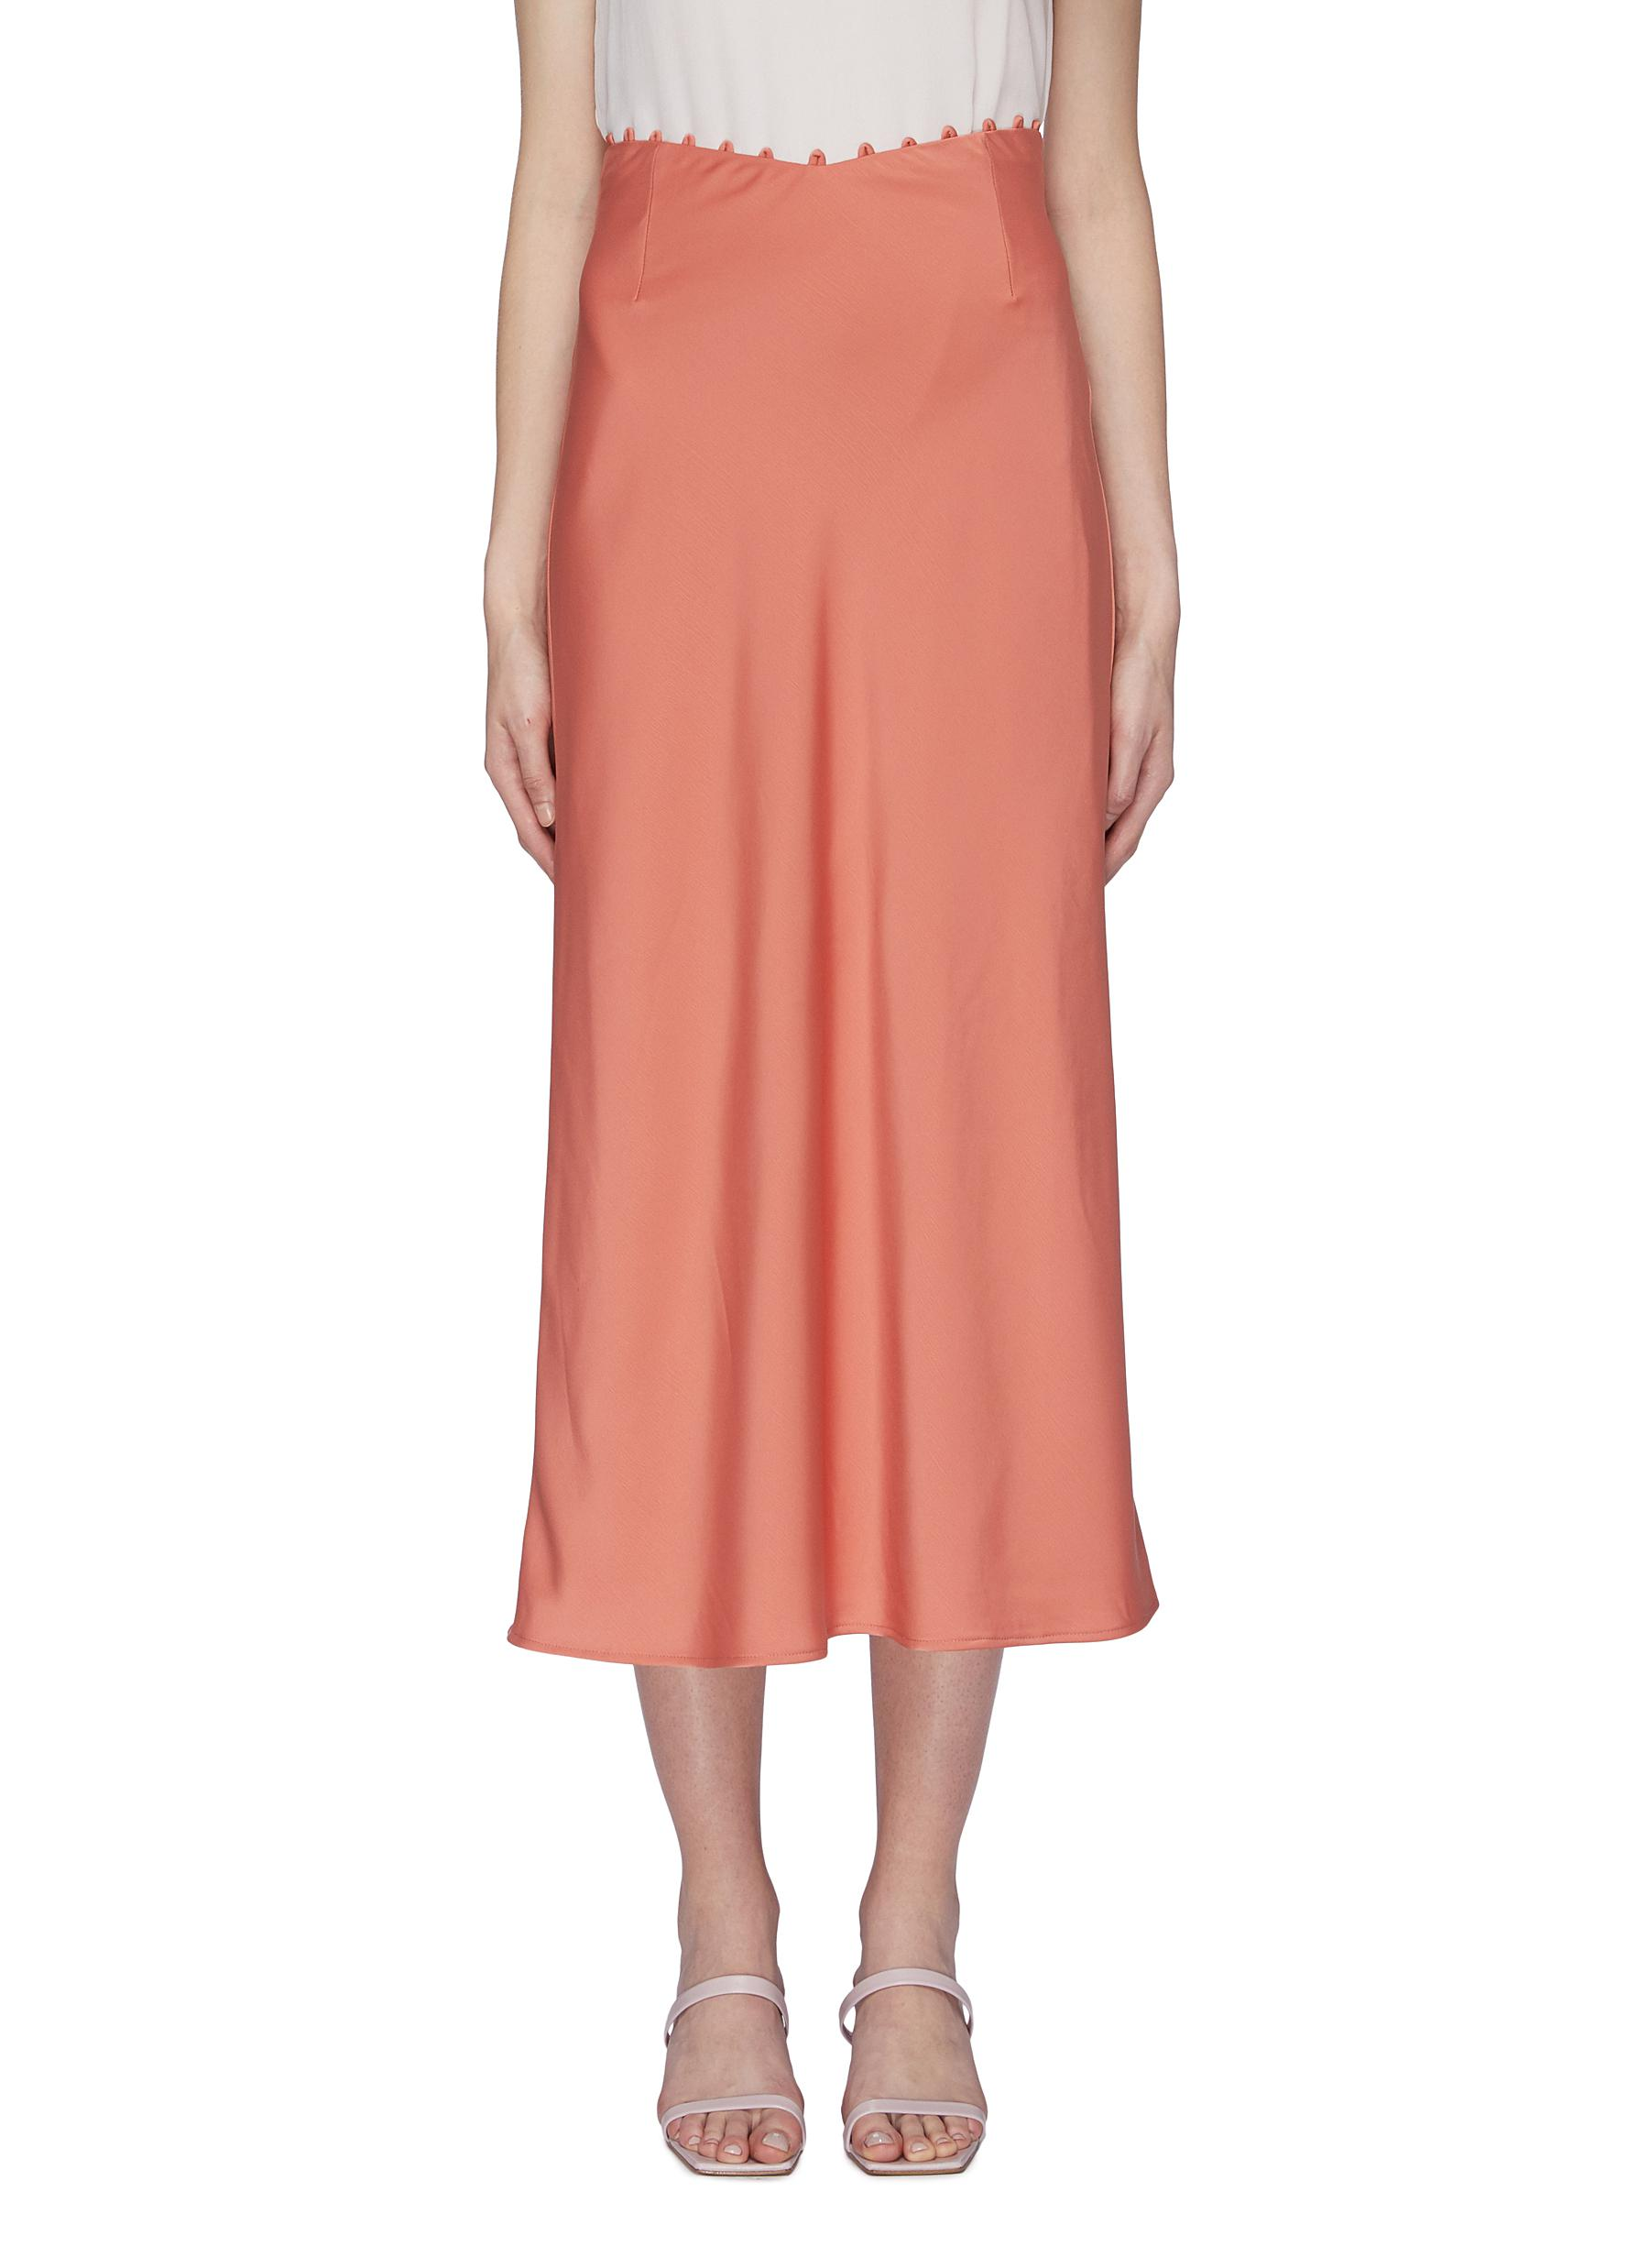 Provided rouleau loop waist skirt by C/Meo Collective